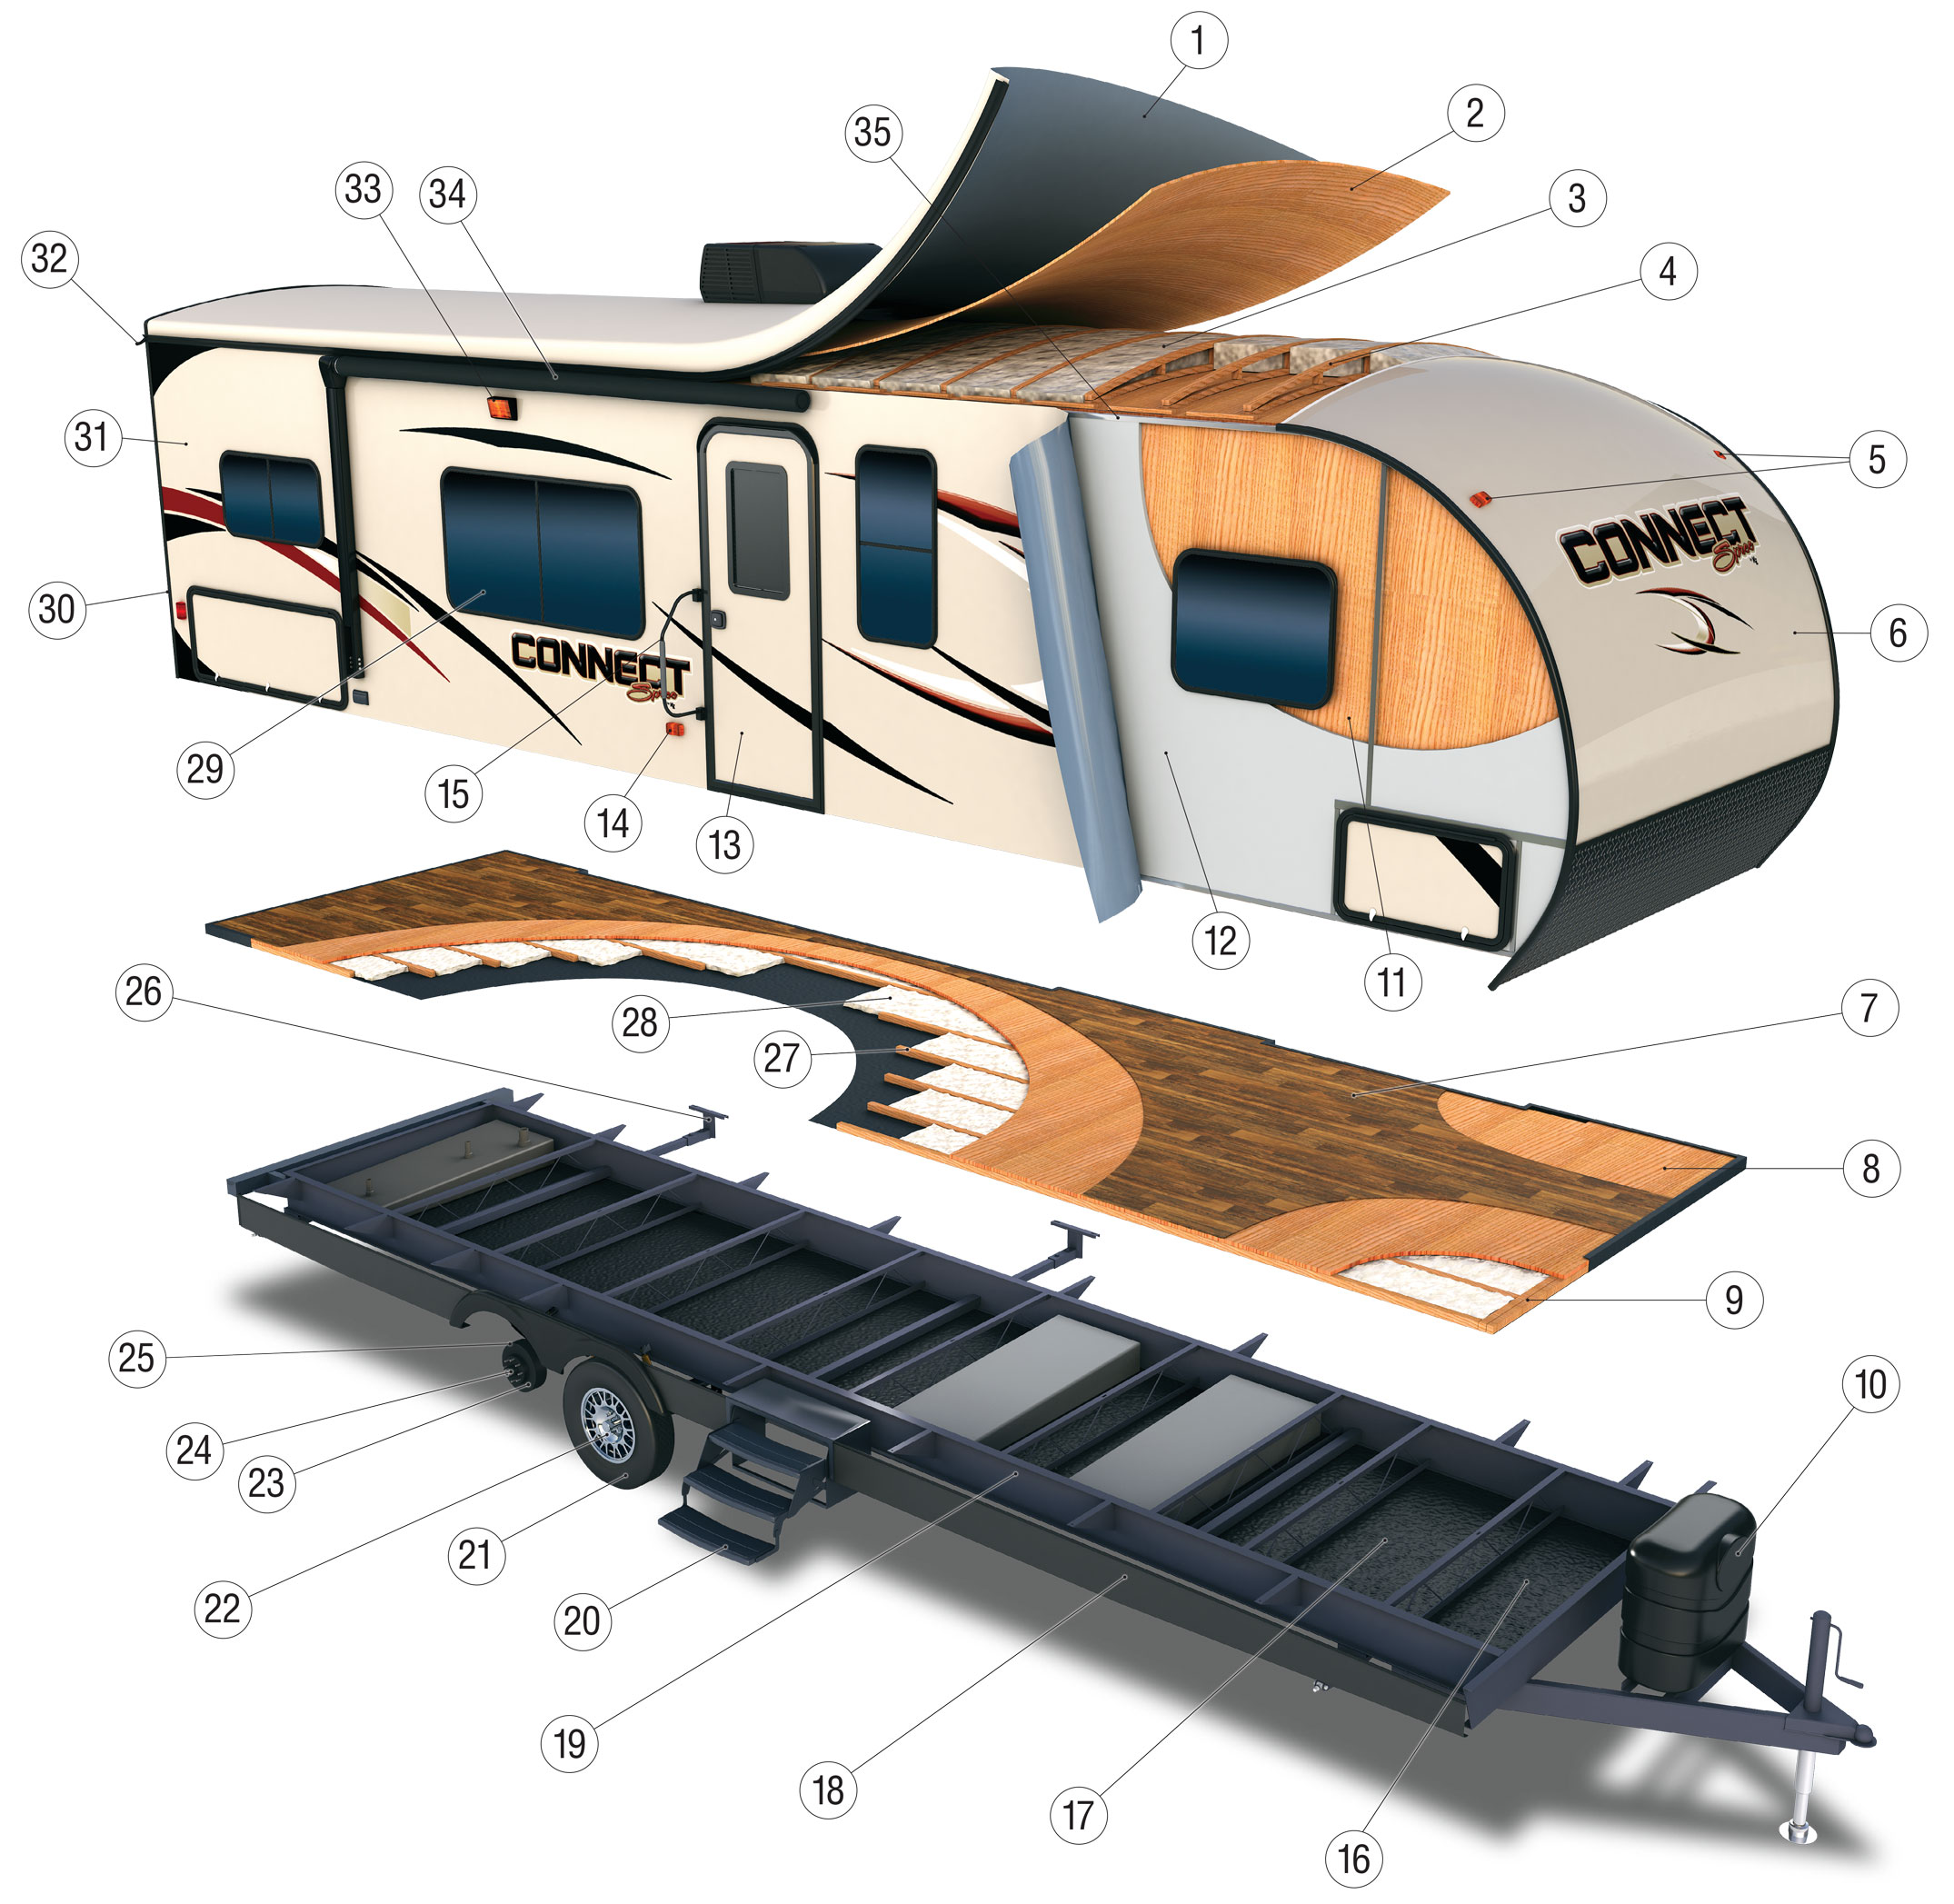 2016 Spree Connect Lightweight Travel Trailer Features K